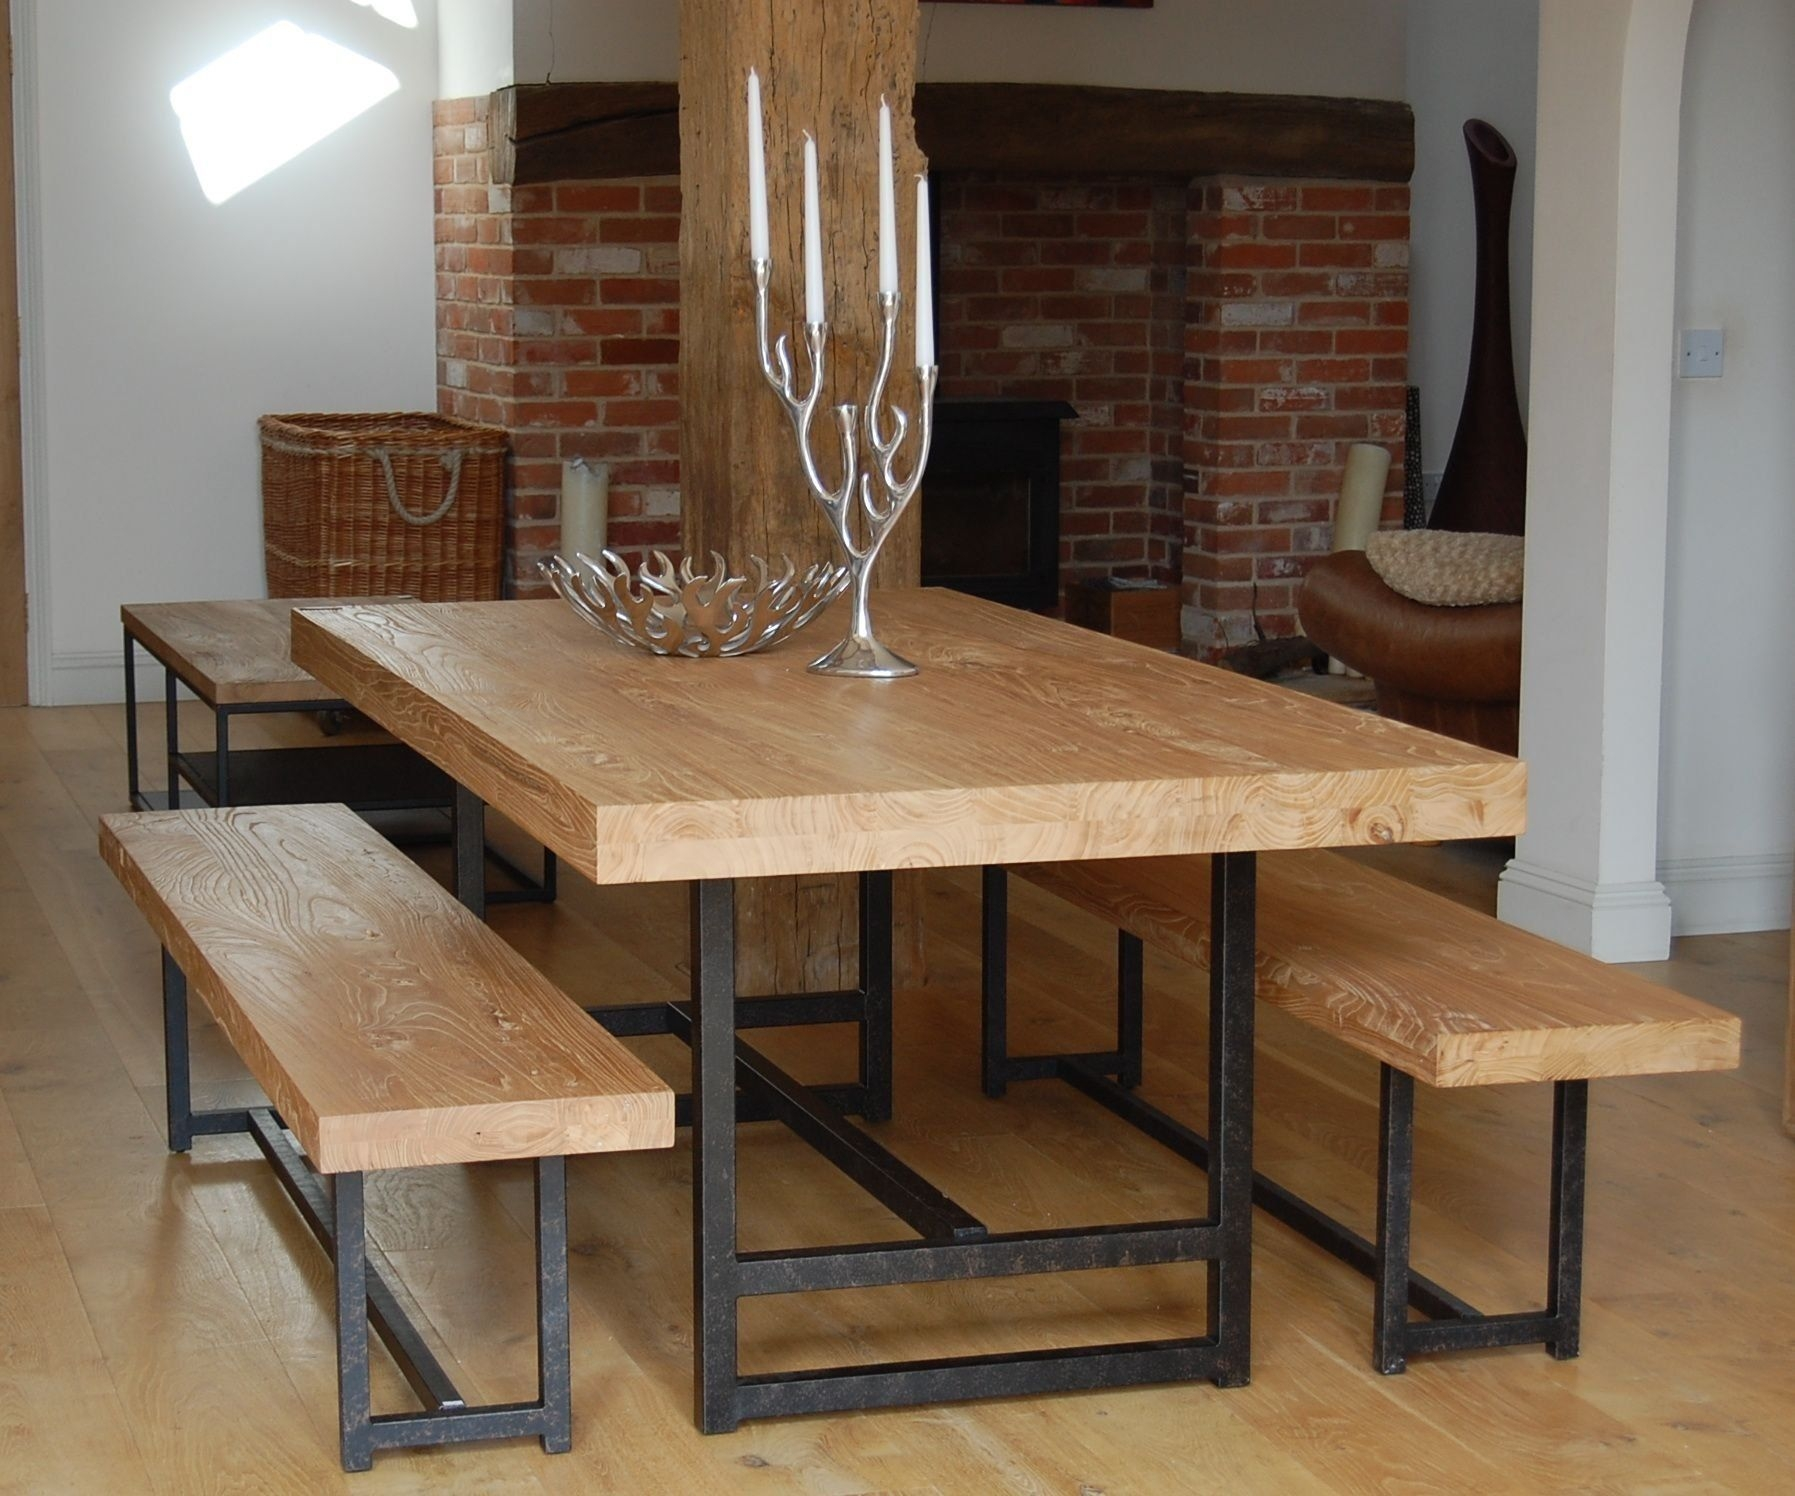 Modern Bench Style Dining Table Set Ideas | HomesFeed